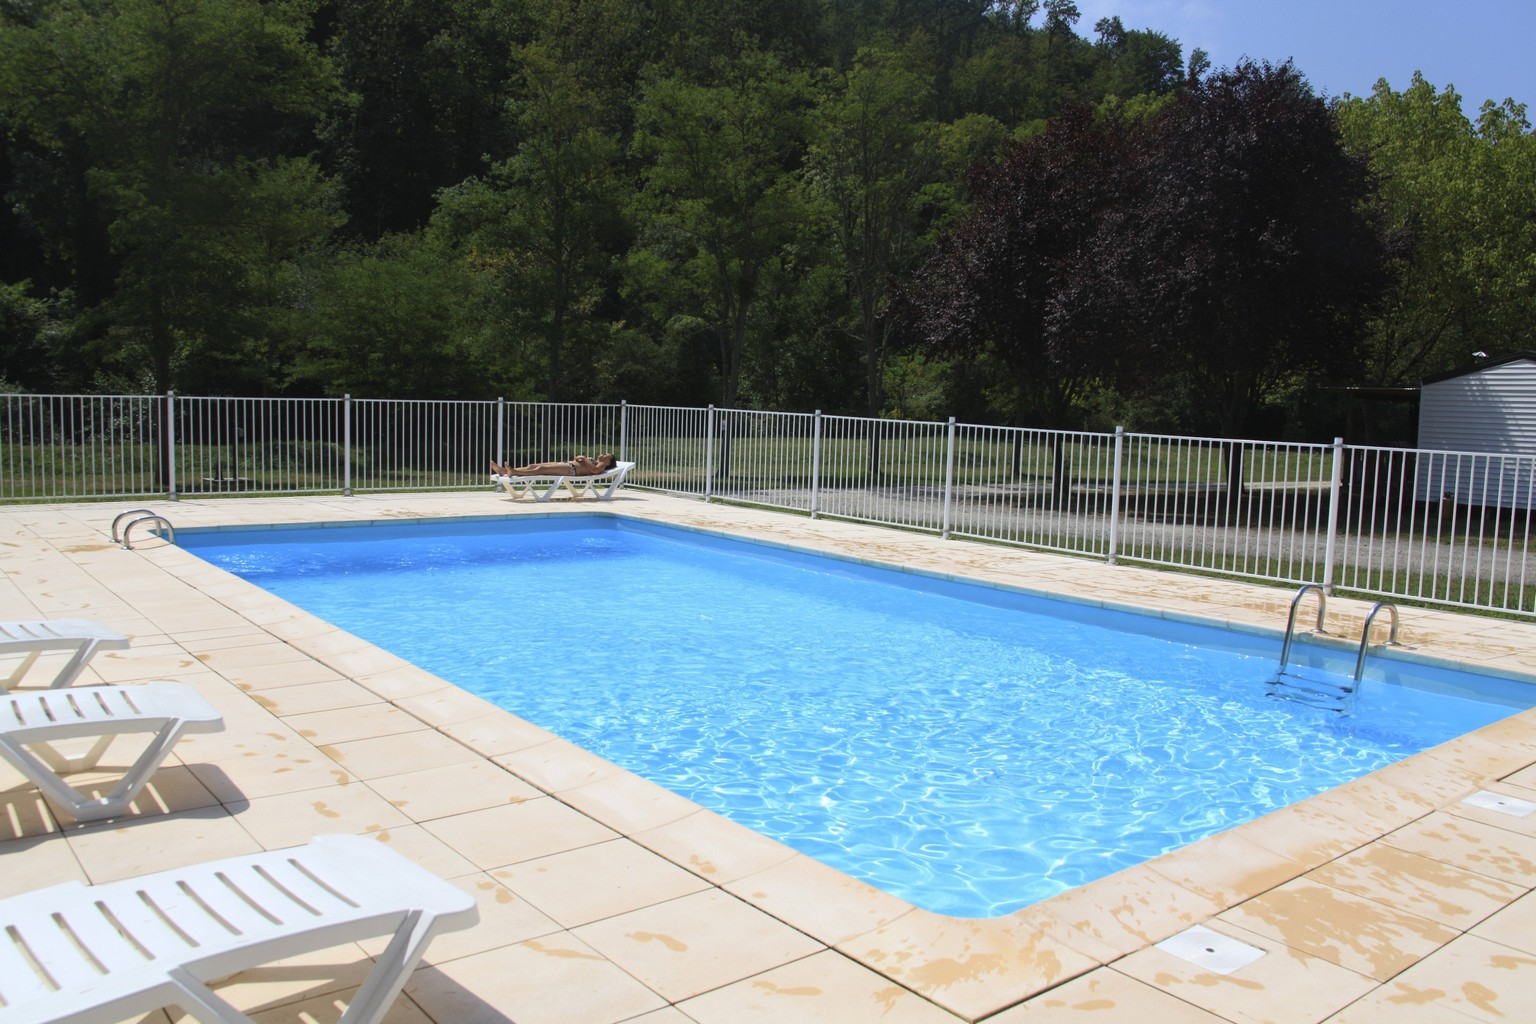 Barri res de protection de piscine faire le bon choix for Barrieres de protection pour piscine